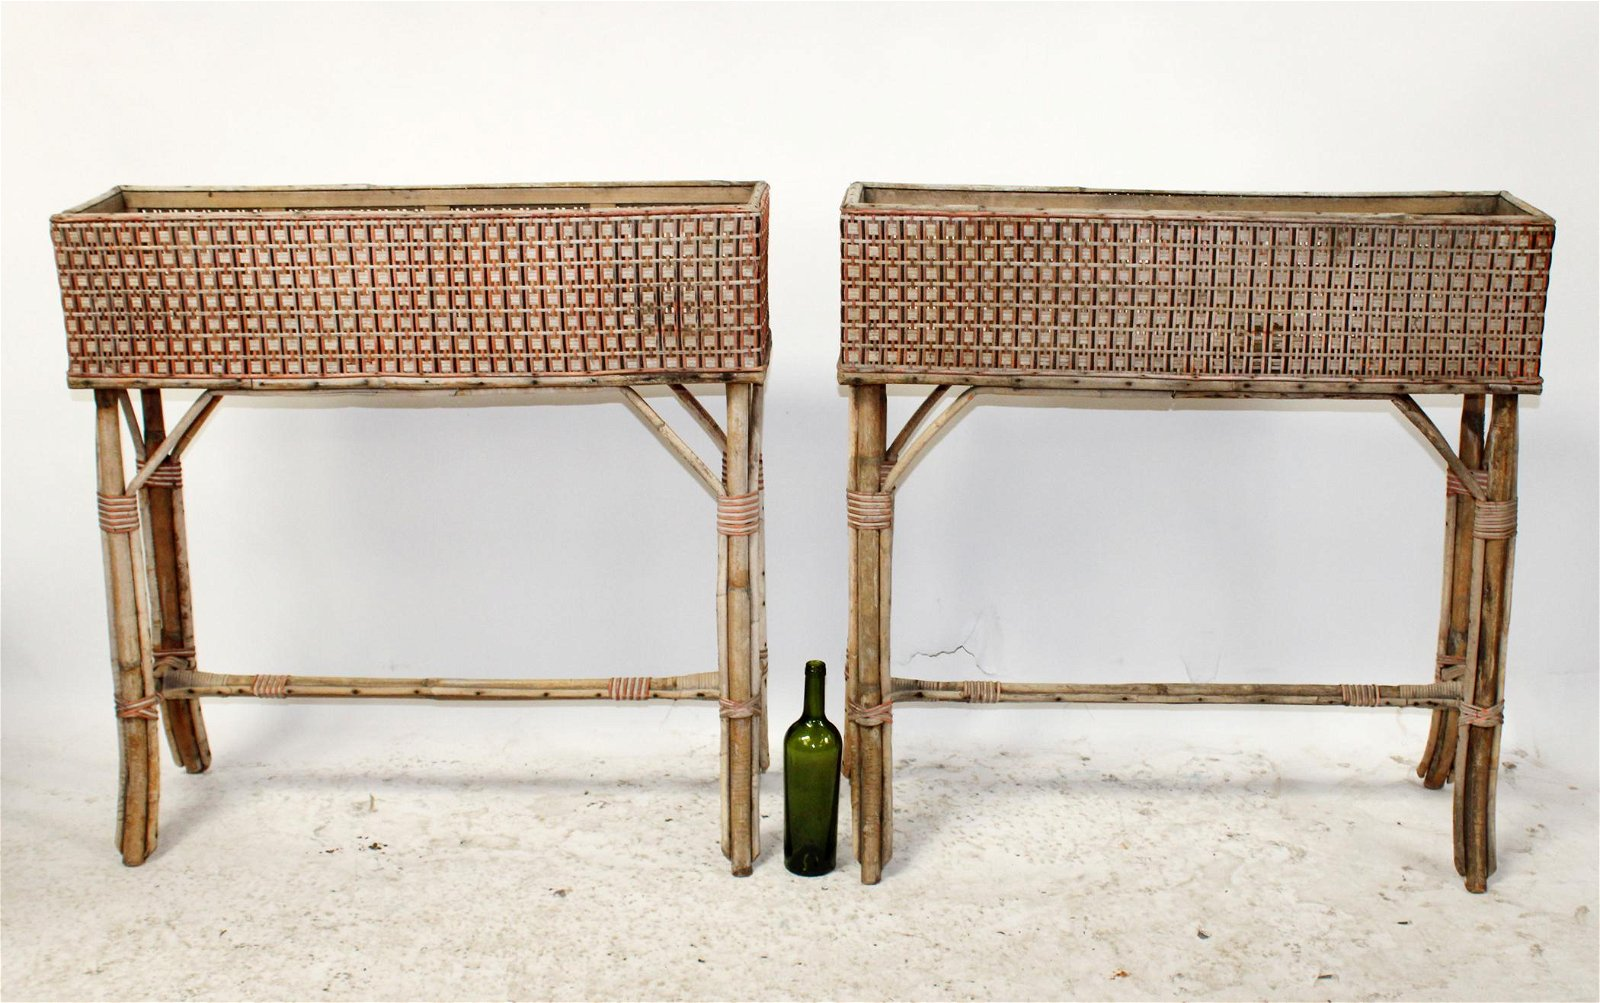 Lot of 2 French wicker planters on bamboo legs